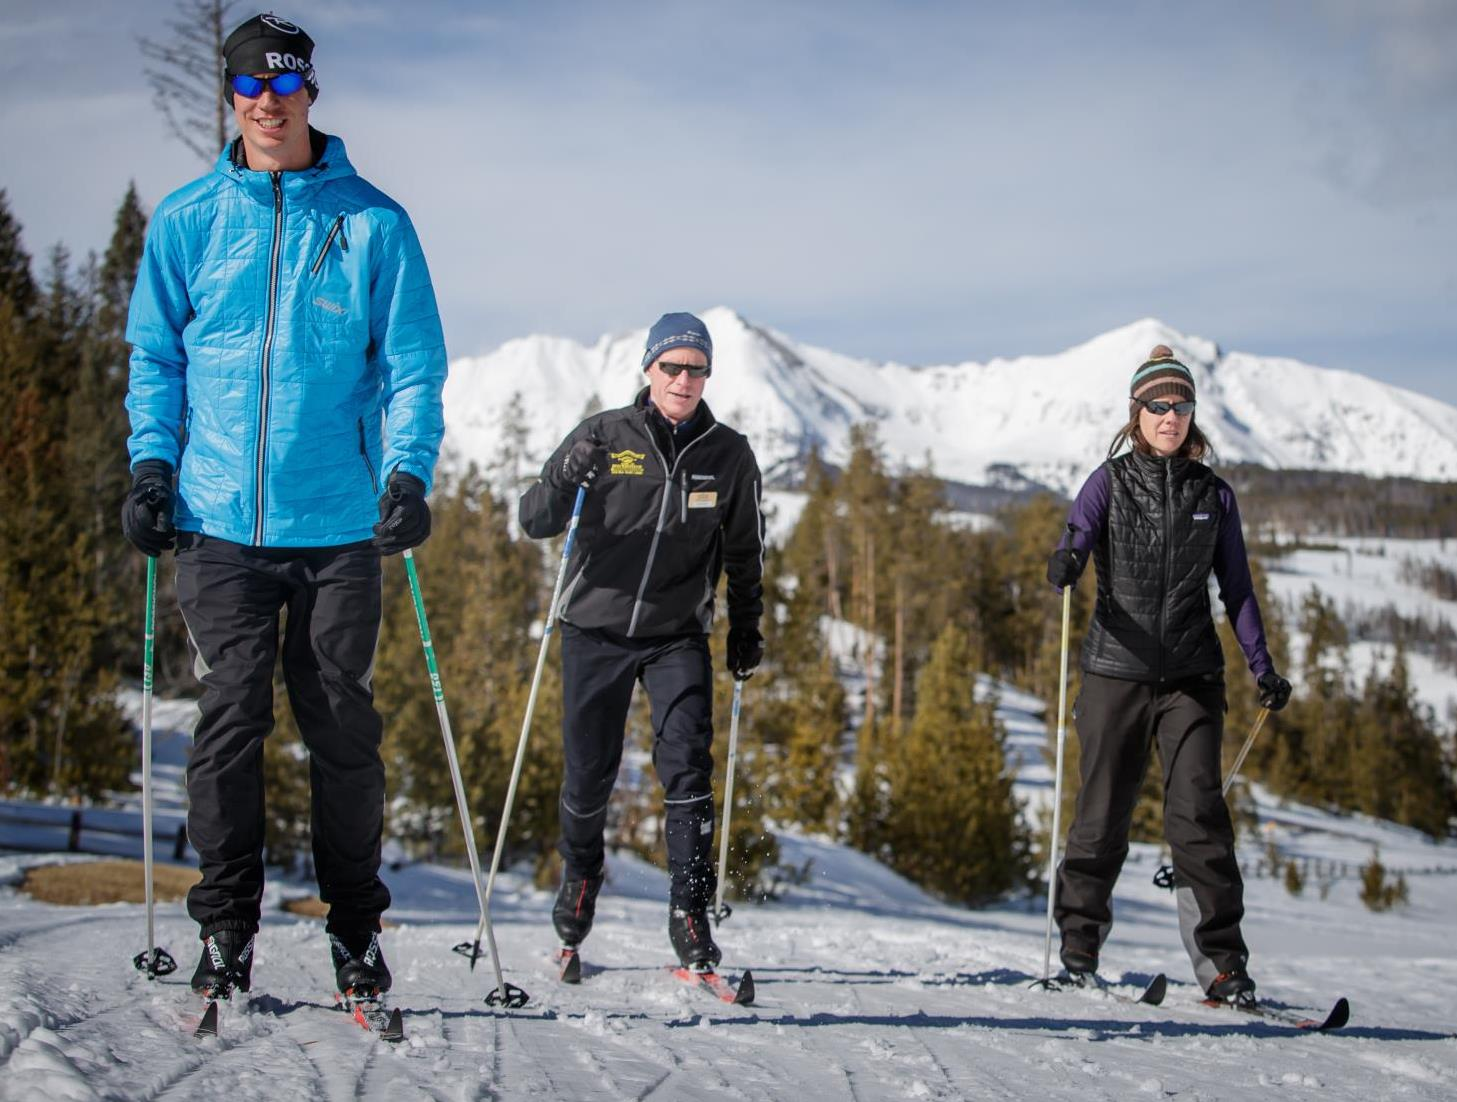 Two men and one woman Nordic skiing on a sunny day